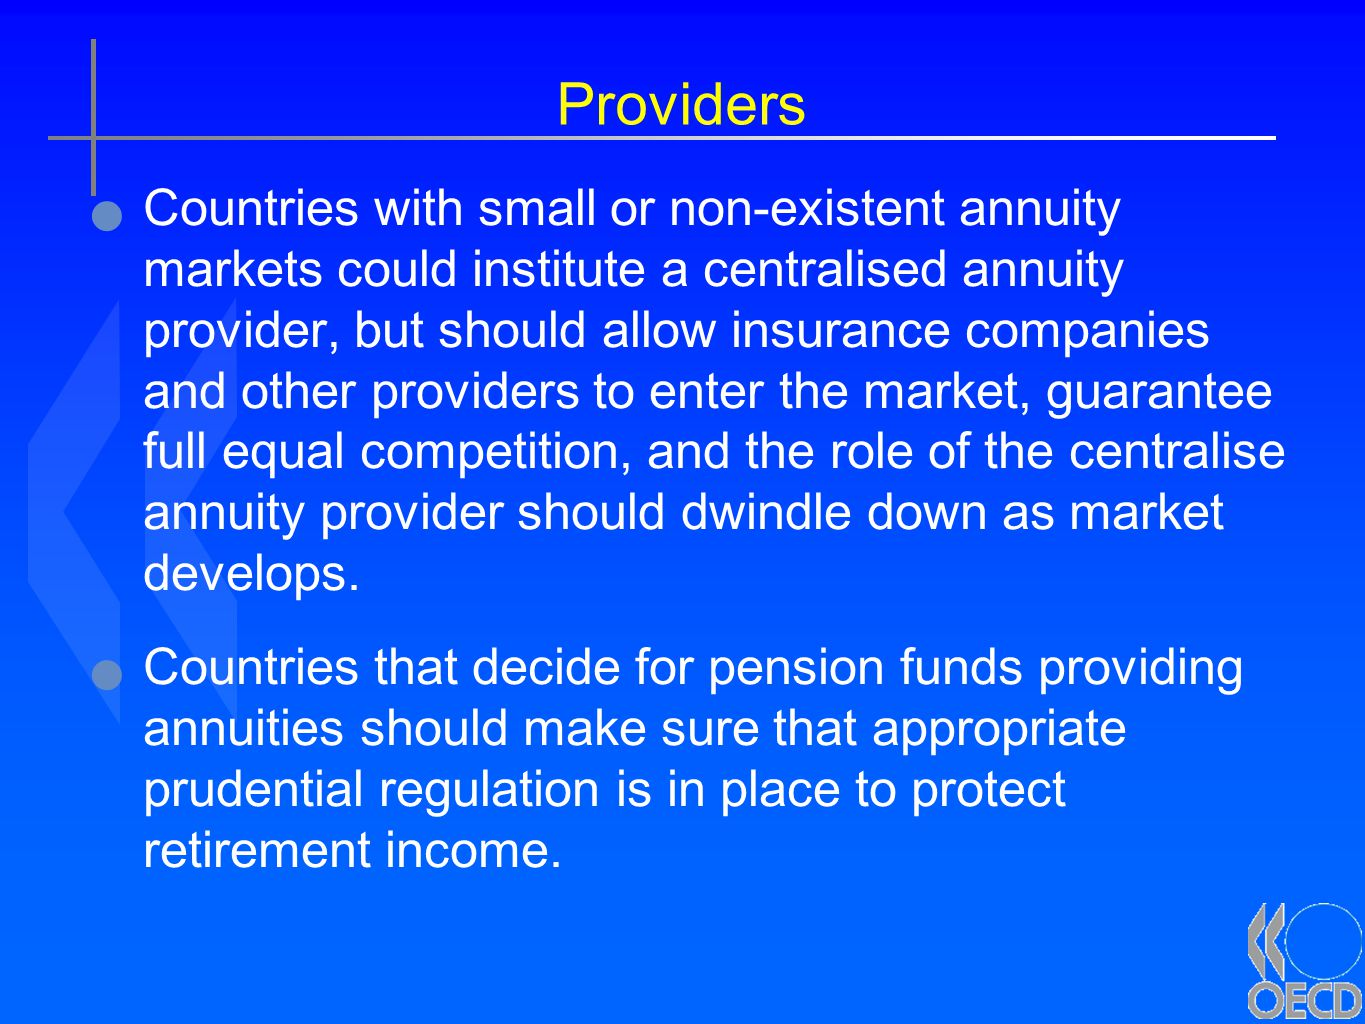 Providers Countries with small or non-existent annuity markets could institute a centralised annuity provider, but should allow insurance companies and other providers to enter the market, guarantee full equal competition, and the role of the centralise annuity provider should dwindle down as market develops.